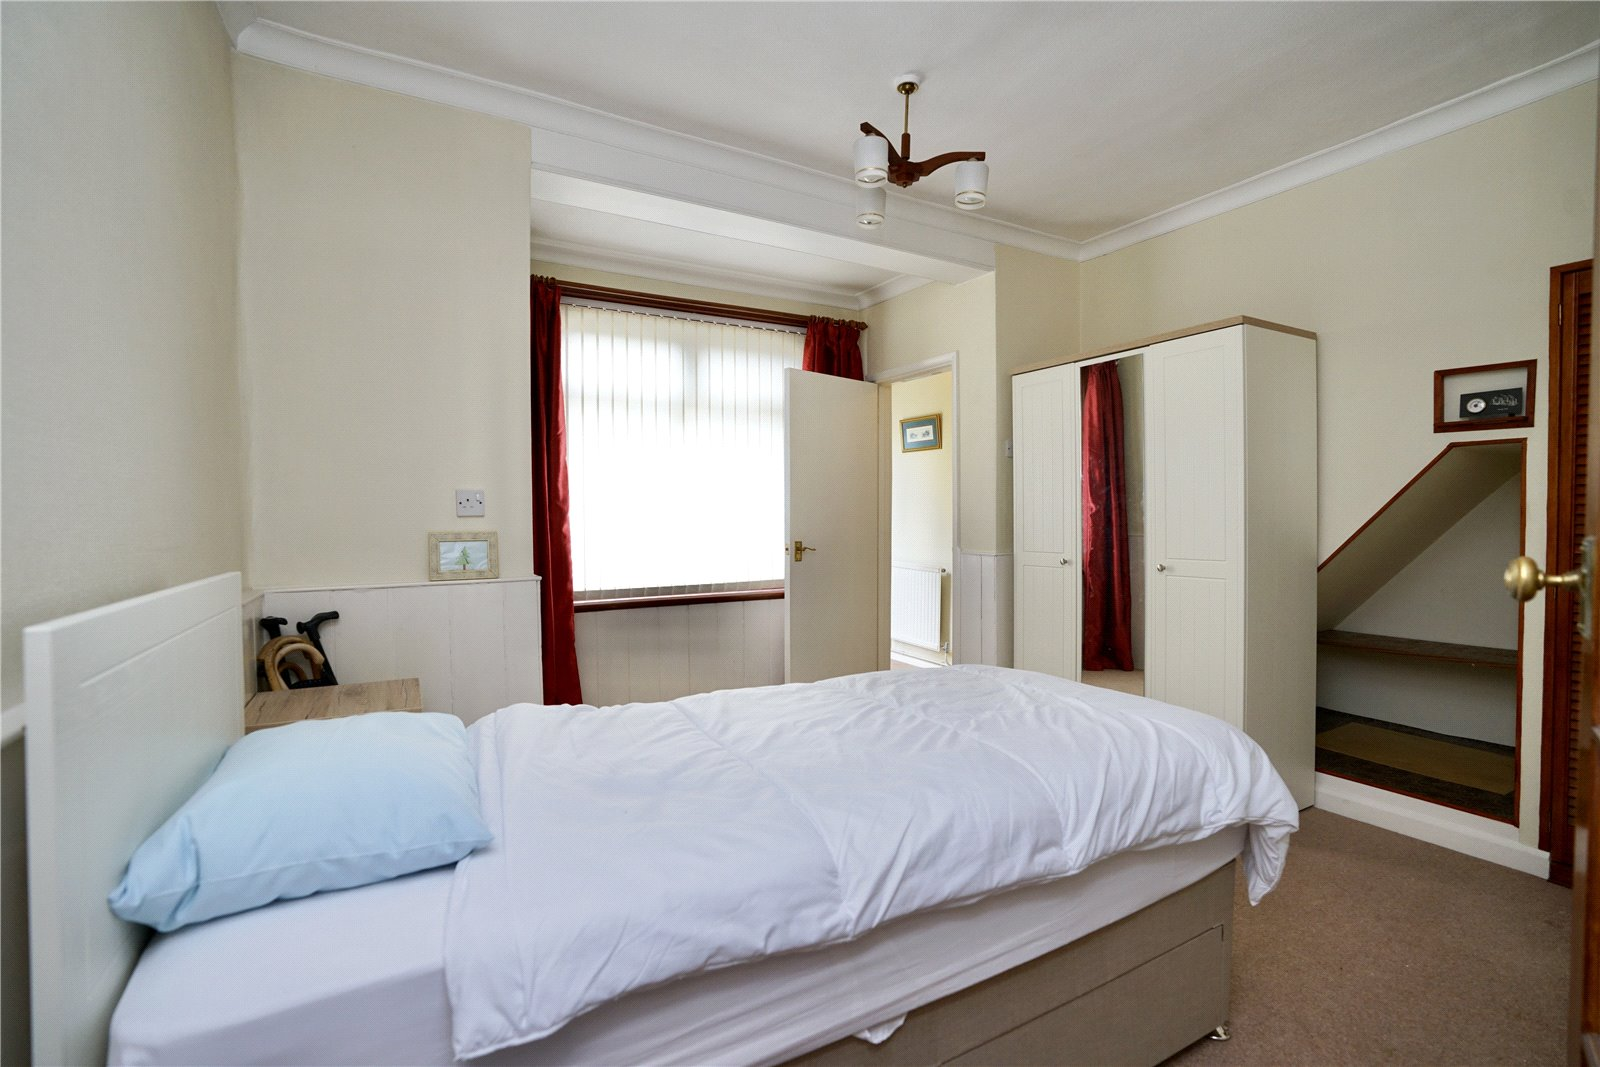 3 bed house for sale in Great North Road, Eaton Socon 11